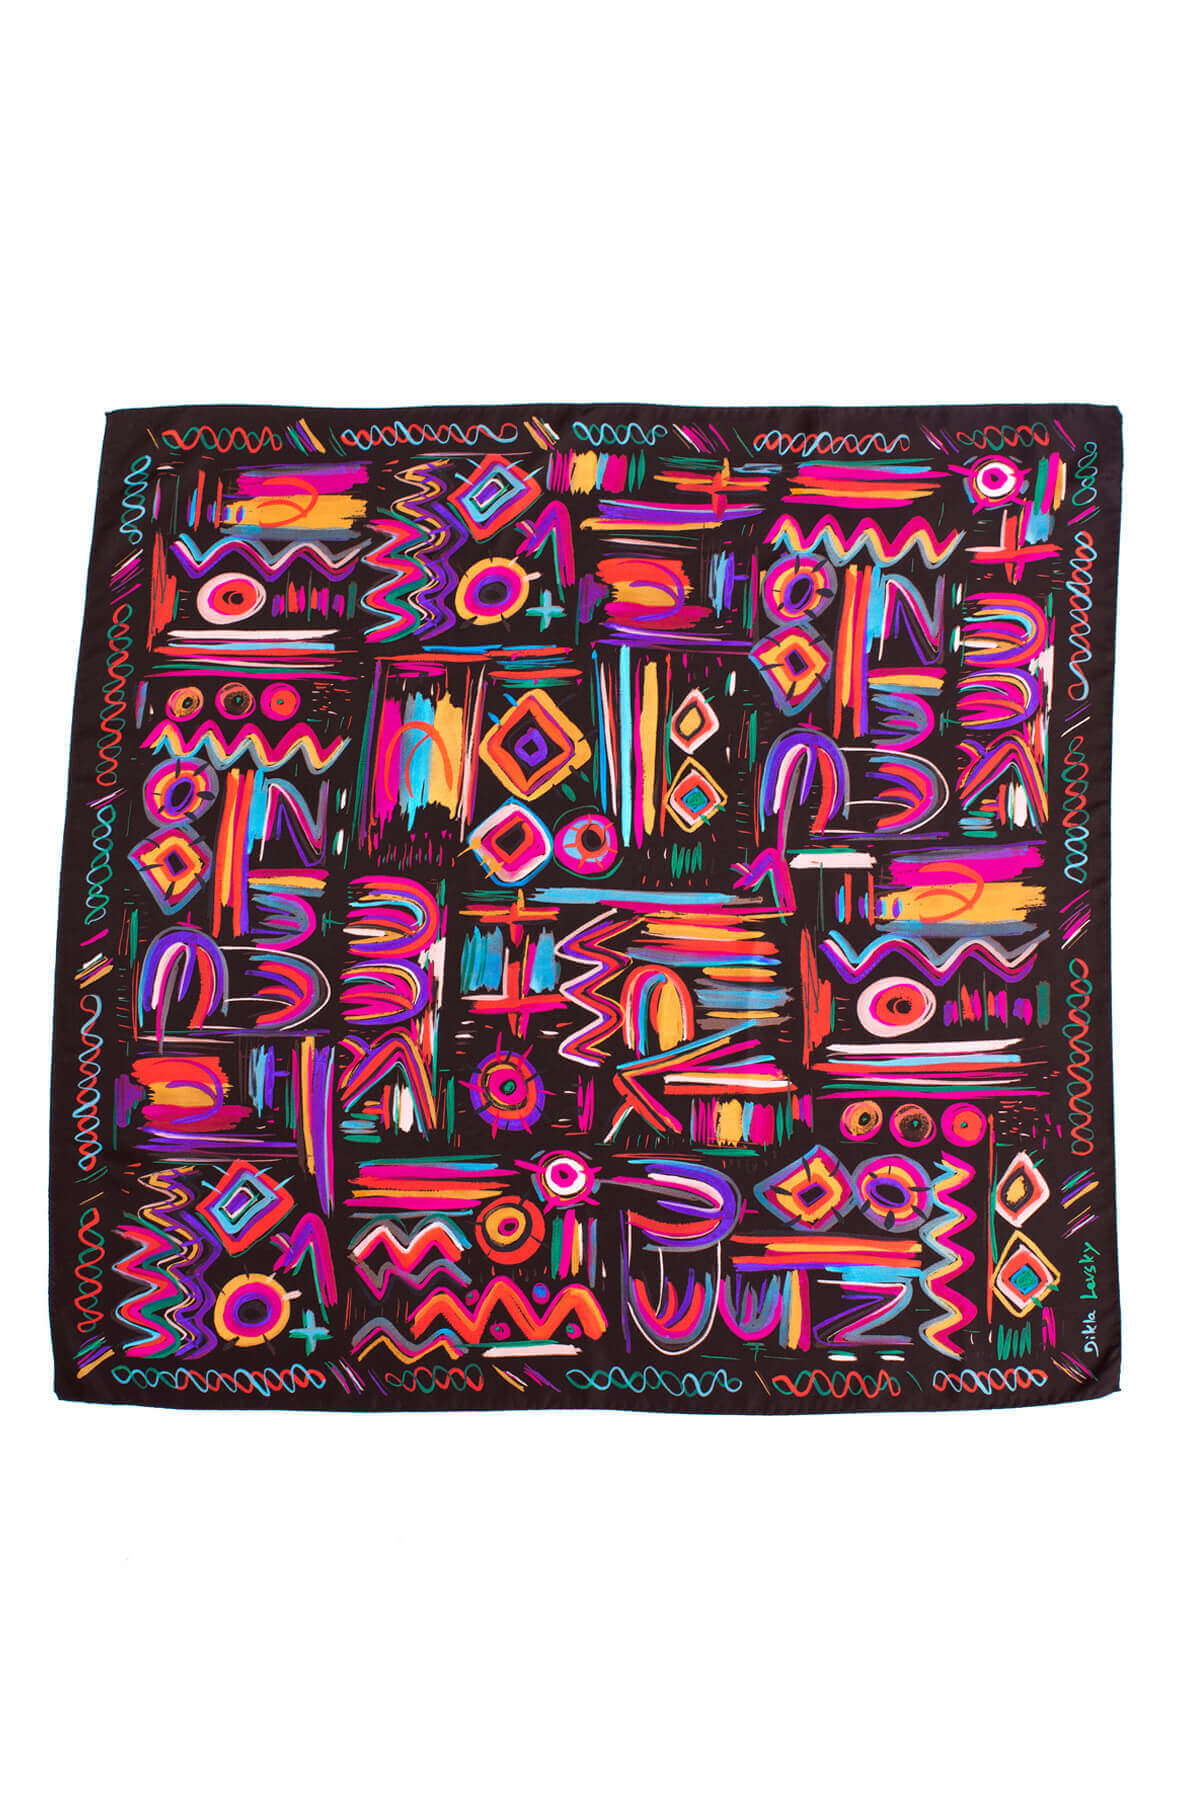 printed silk scarf, colorful wthnic printed twill silk scarf by dikla levsky, chocolate scarf with pink and purple